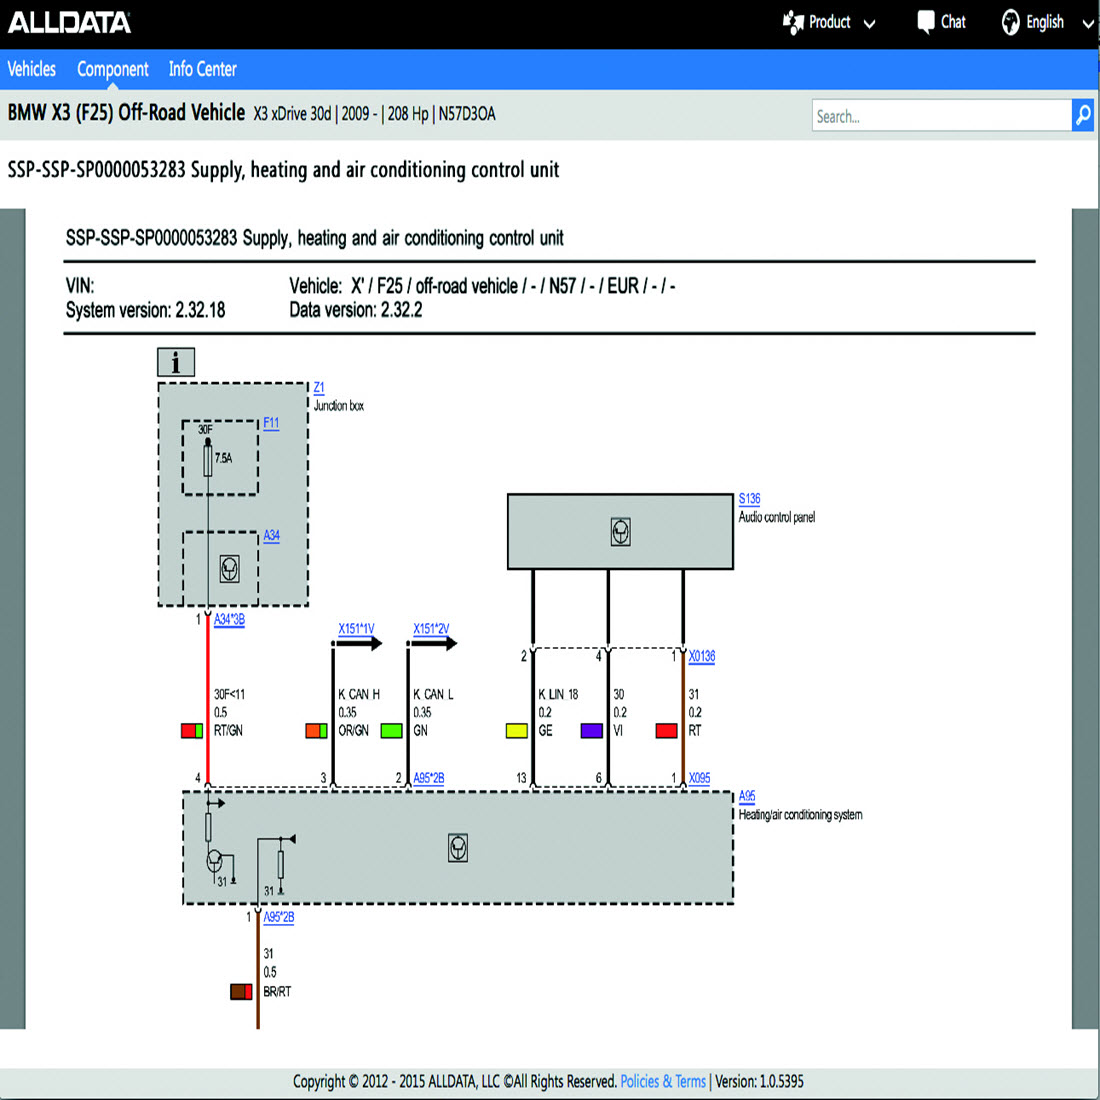 ALLDATA_Electrical wiring diagrams alldata the industry standard for oe repair information for sale Home Electrical Wiring Diagrams at creativeand.co